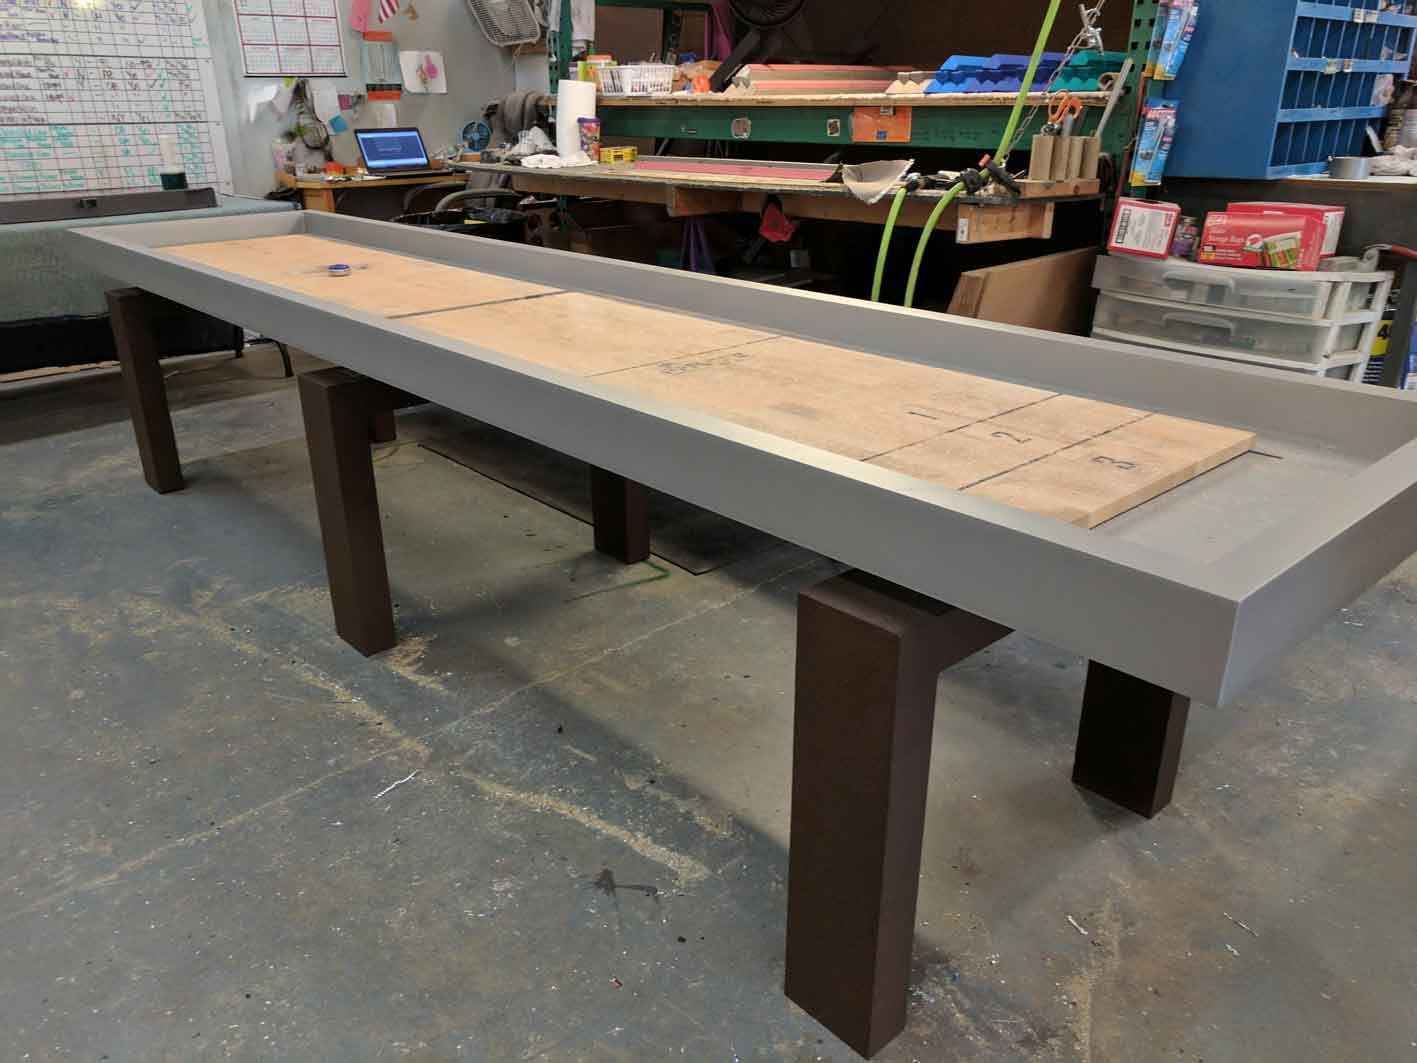 Custom outdoor shuffleboard table in production at R&R Outdoors All Weather Billiards manufacturing facility